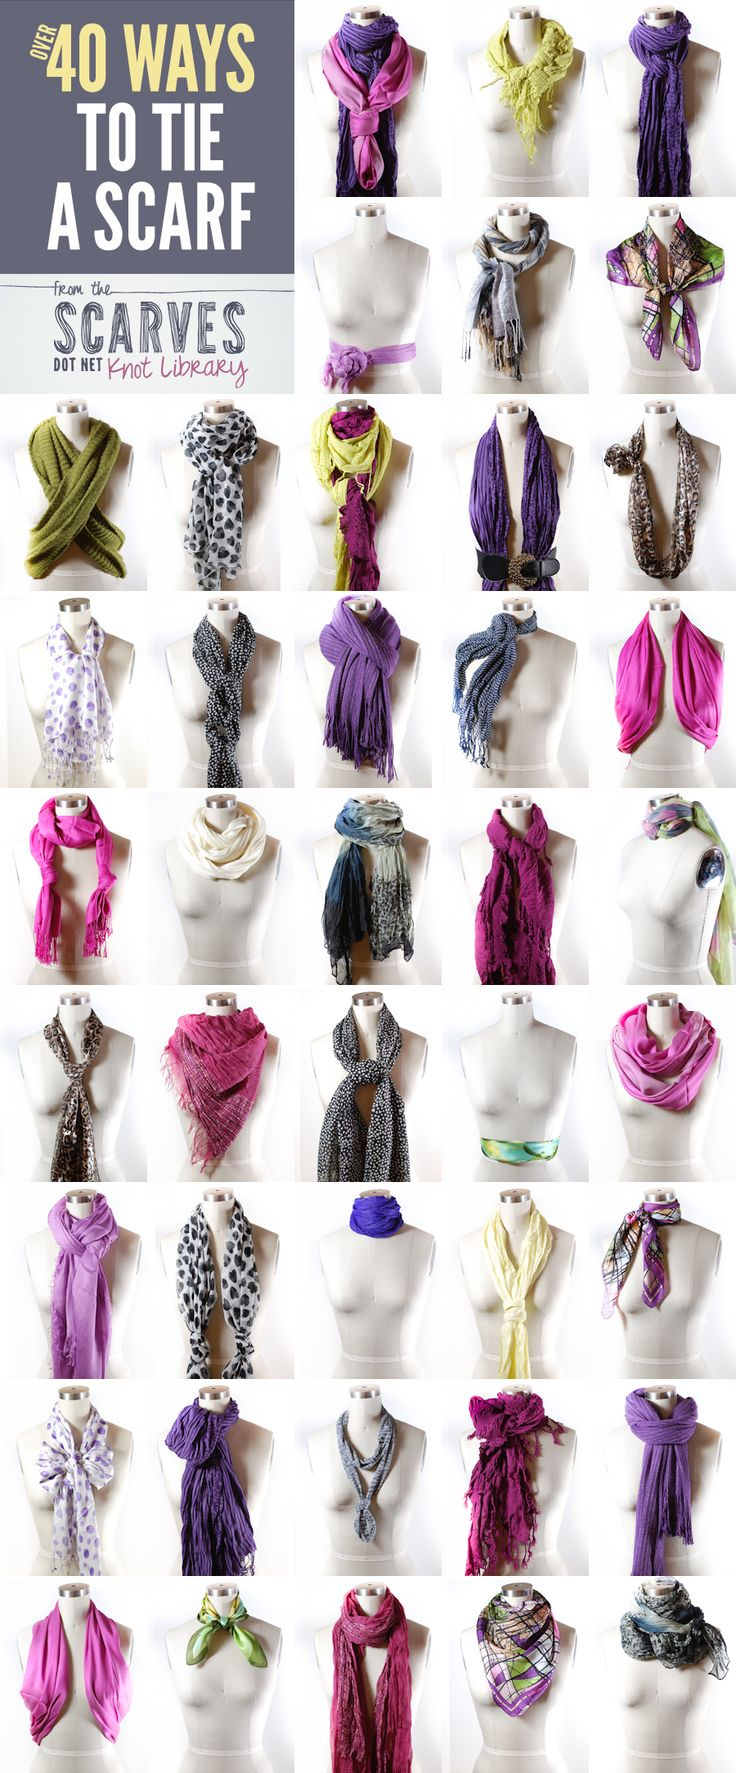 50+ Ways to Tie a ScarfTies Scarves, Scarfs Tying, Ways To Tie Scarf, Scarf Ties, Wear A Scarf, Ties A Scarf, Fall Fashion, Tie Scarves, Tie A Scarf